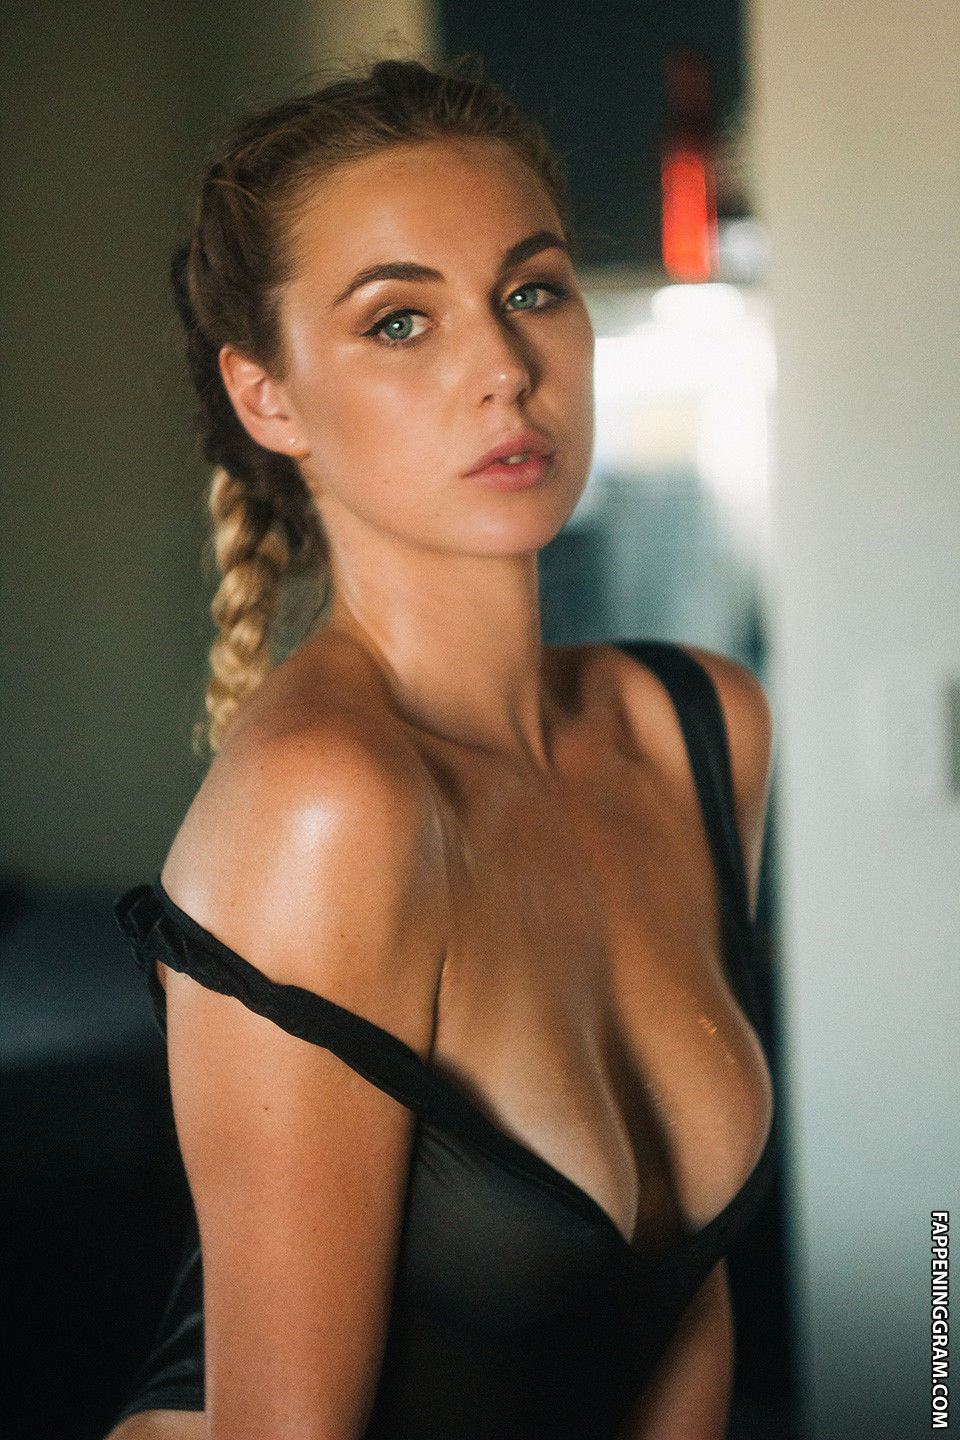 Paige Marie Evans Nude The Fappening - Page 2 - FappeningGram